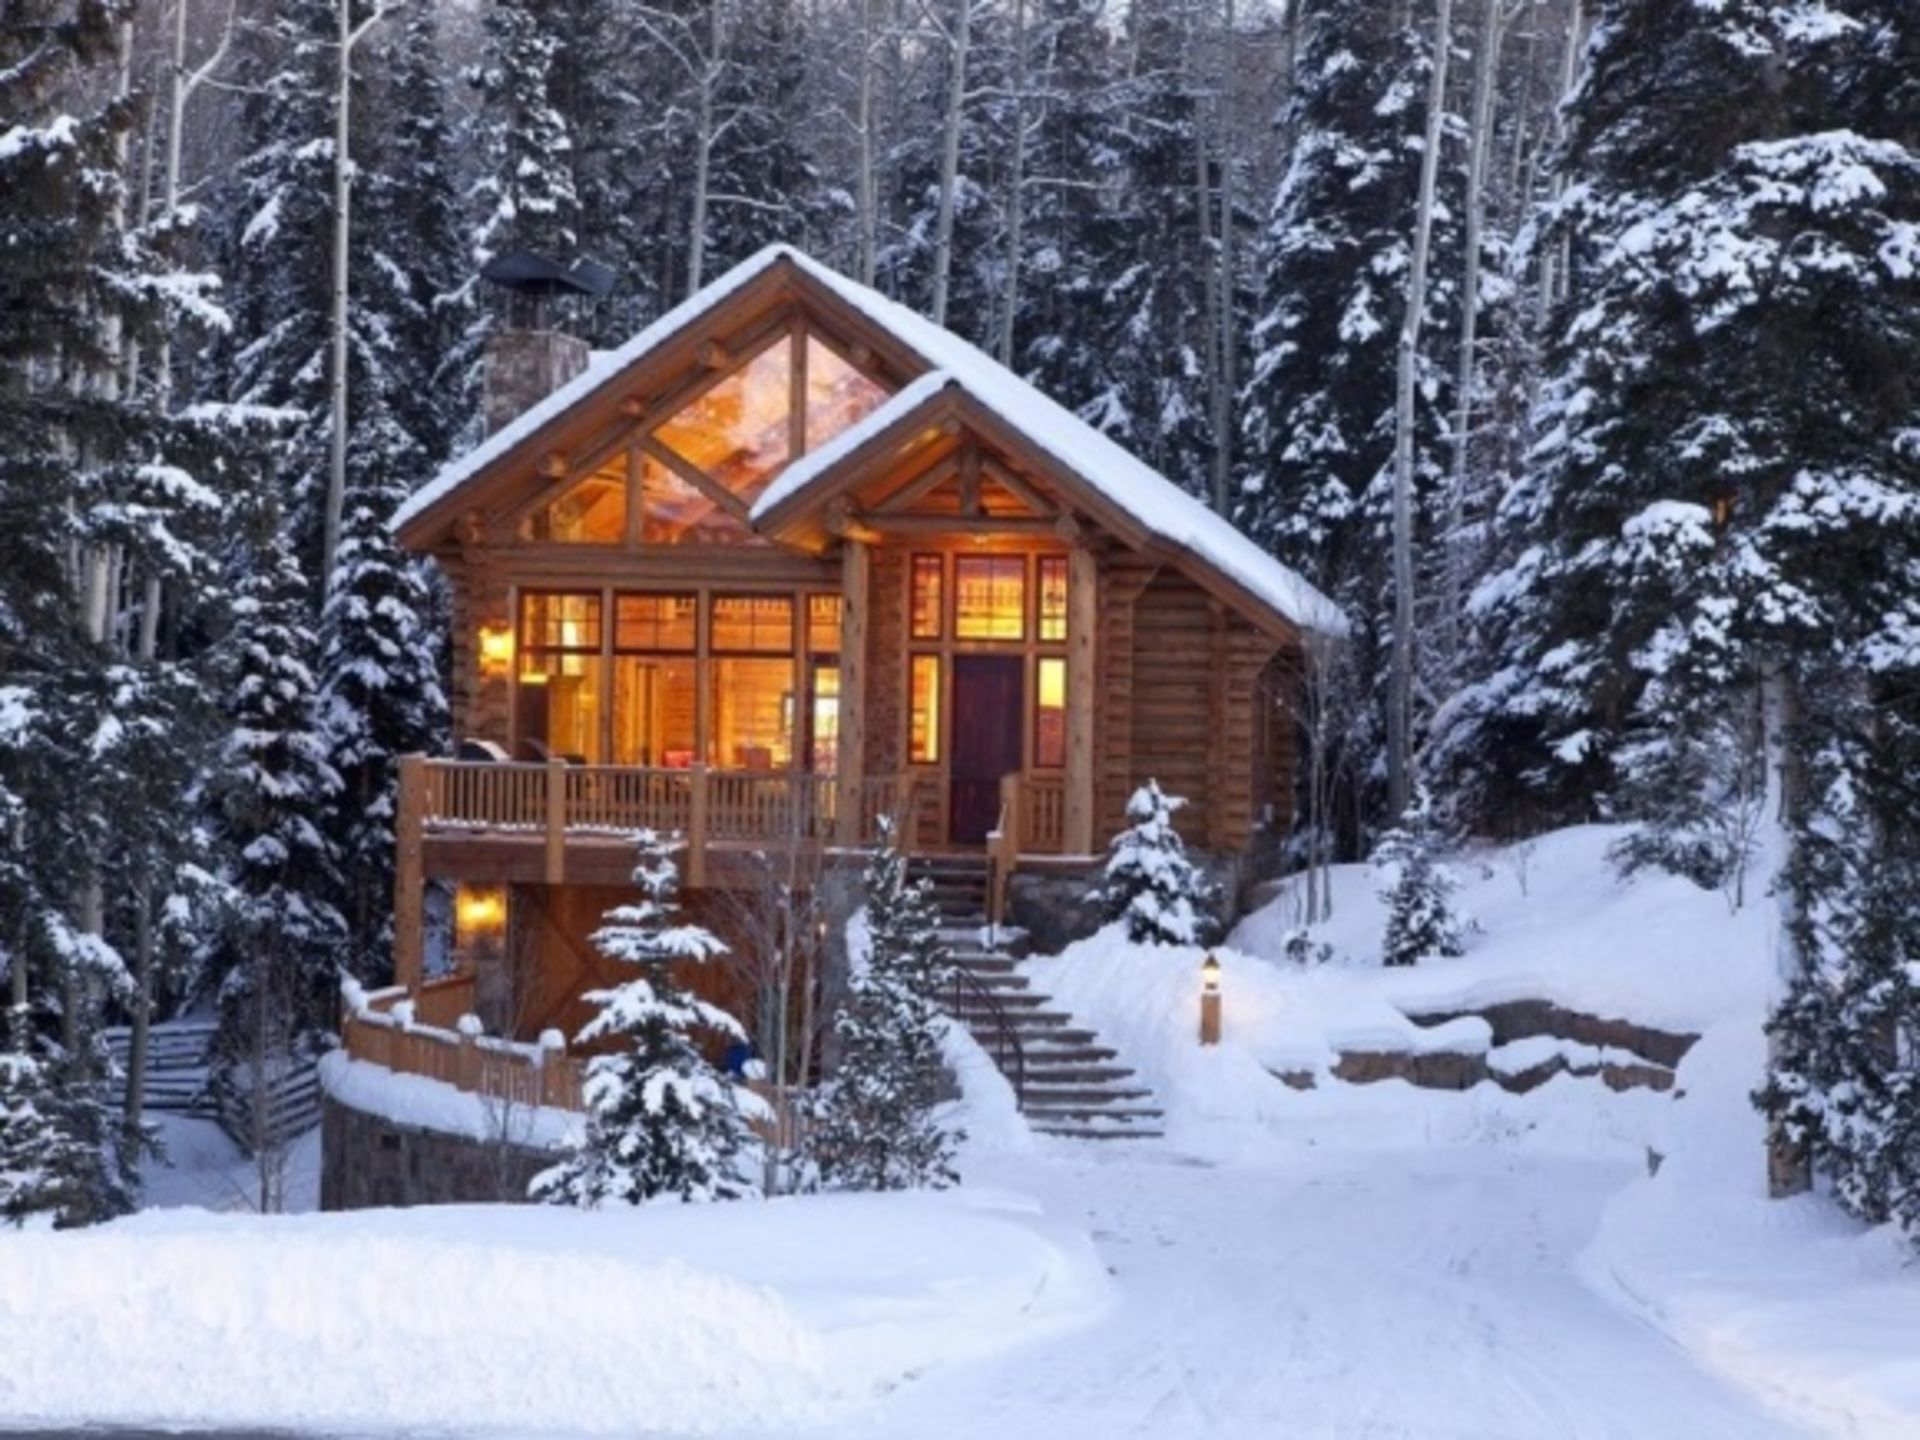 10 Reasons to Buy a Second Home in Colorado